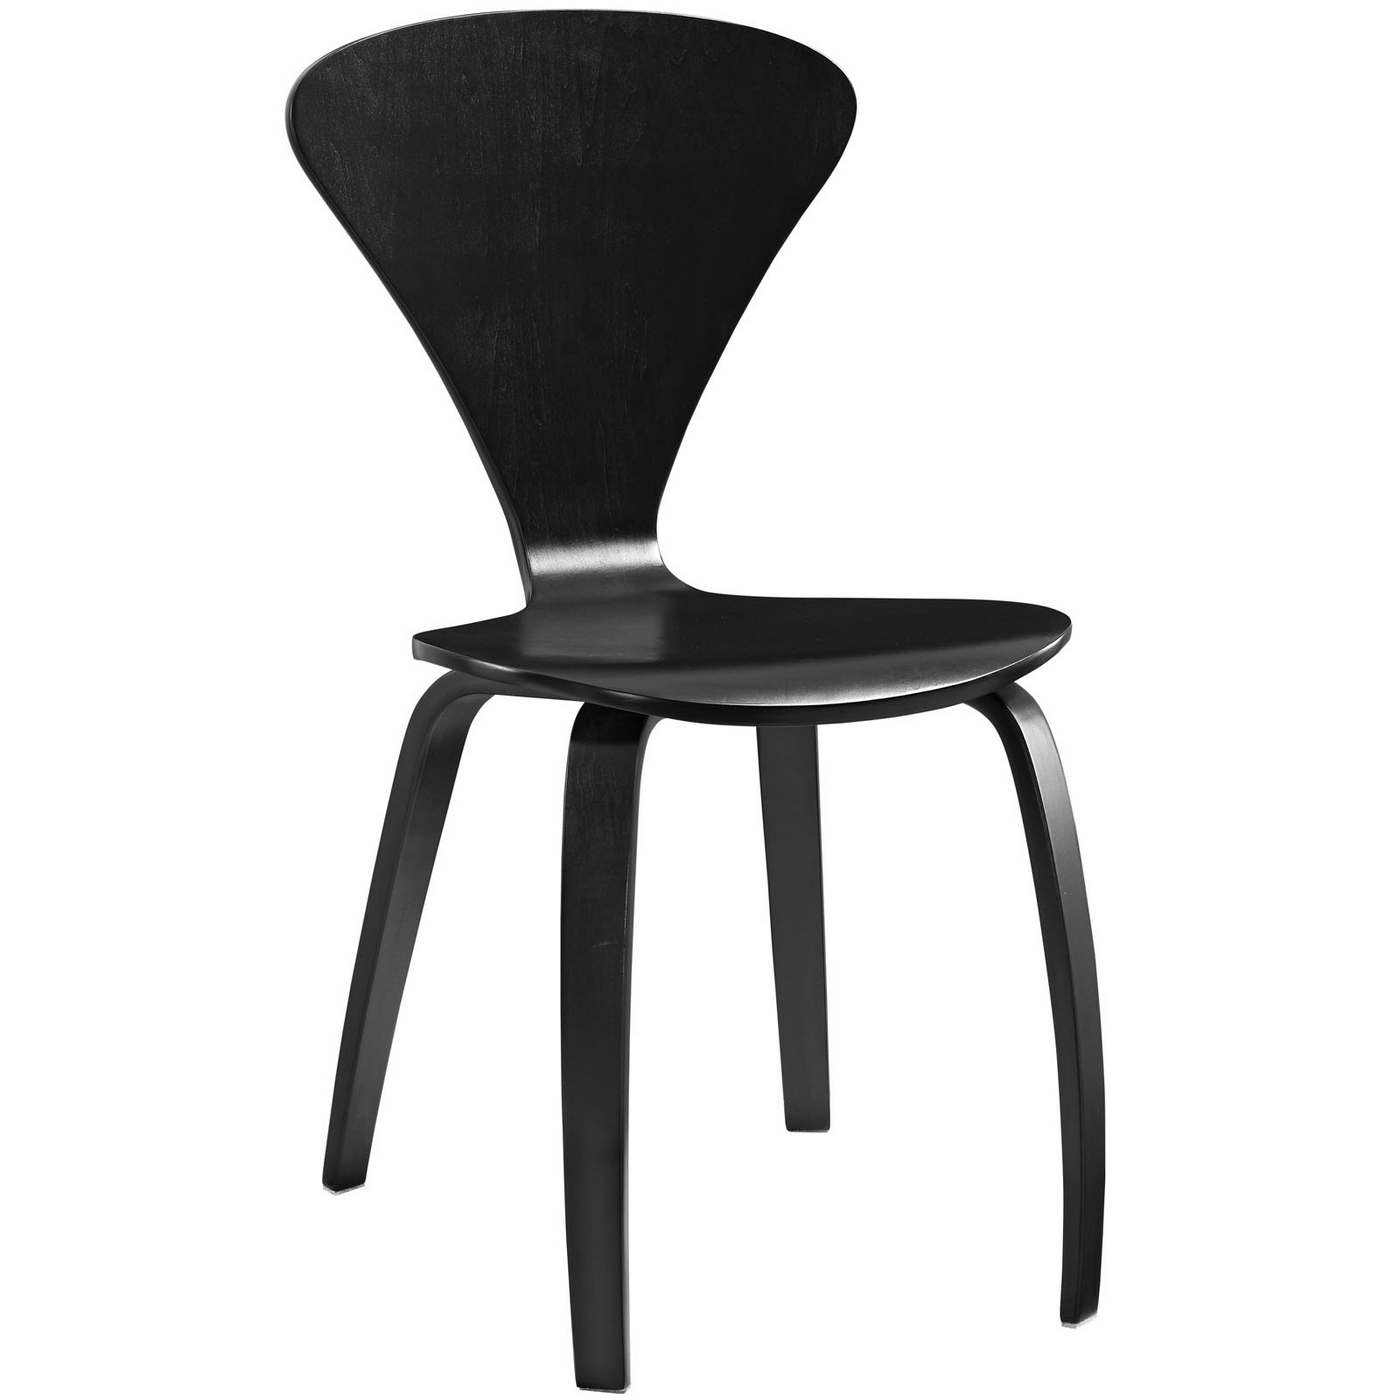 Vortex Contemporary Molded Wood Panel Dining Side Chair Black